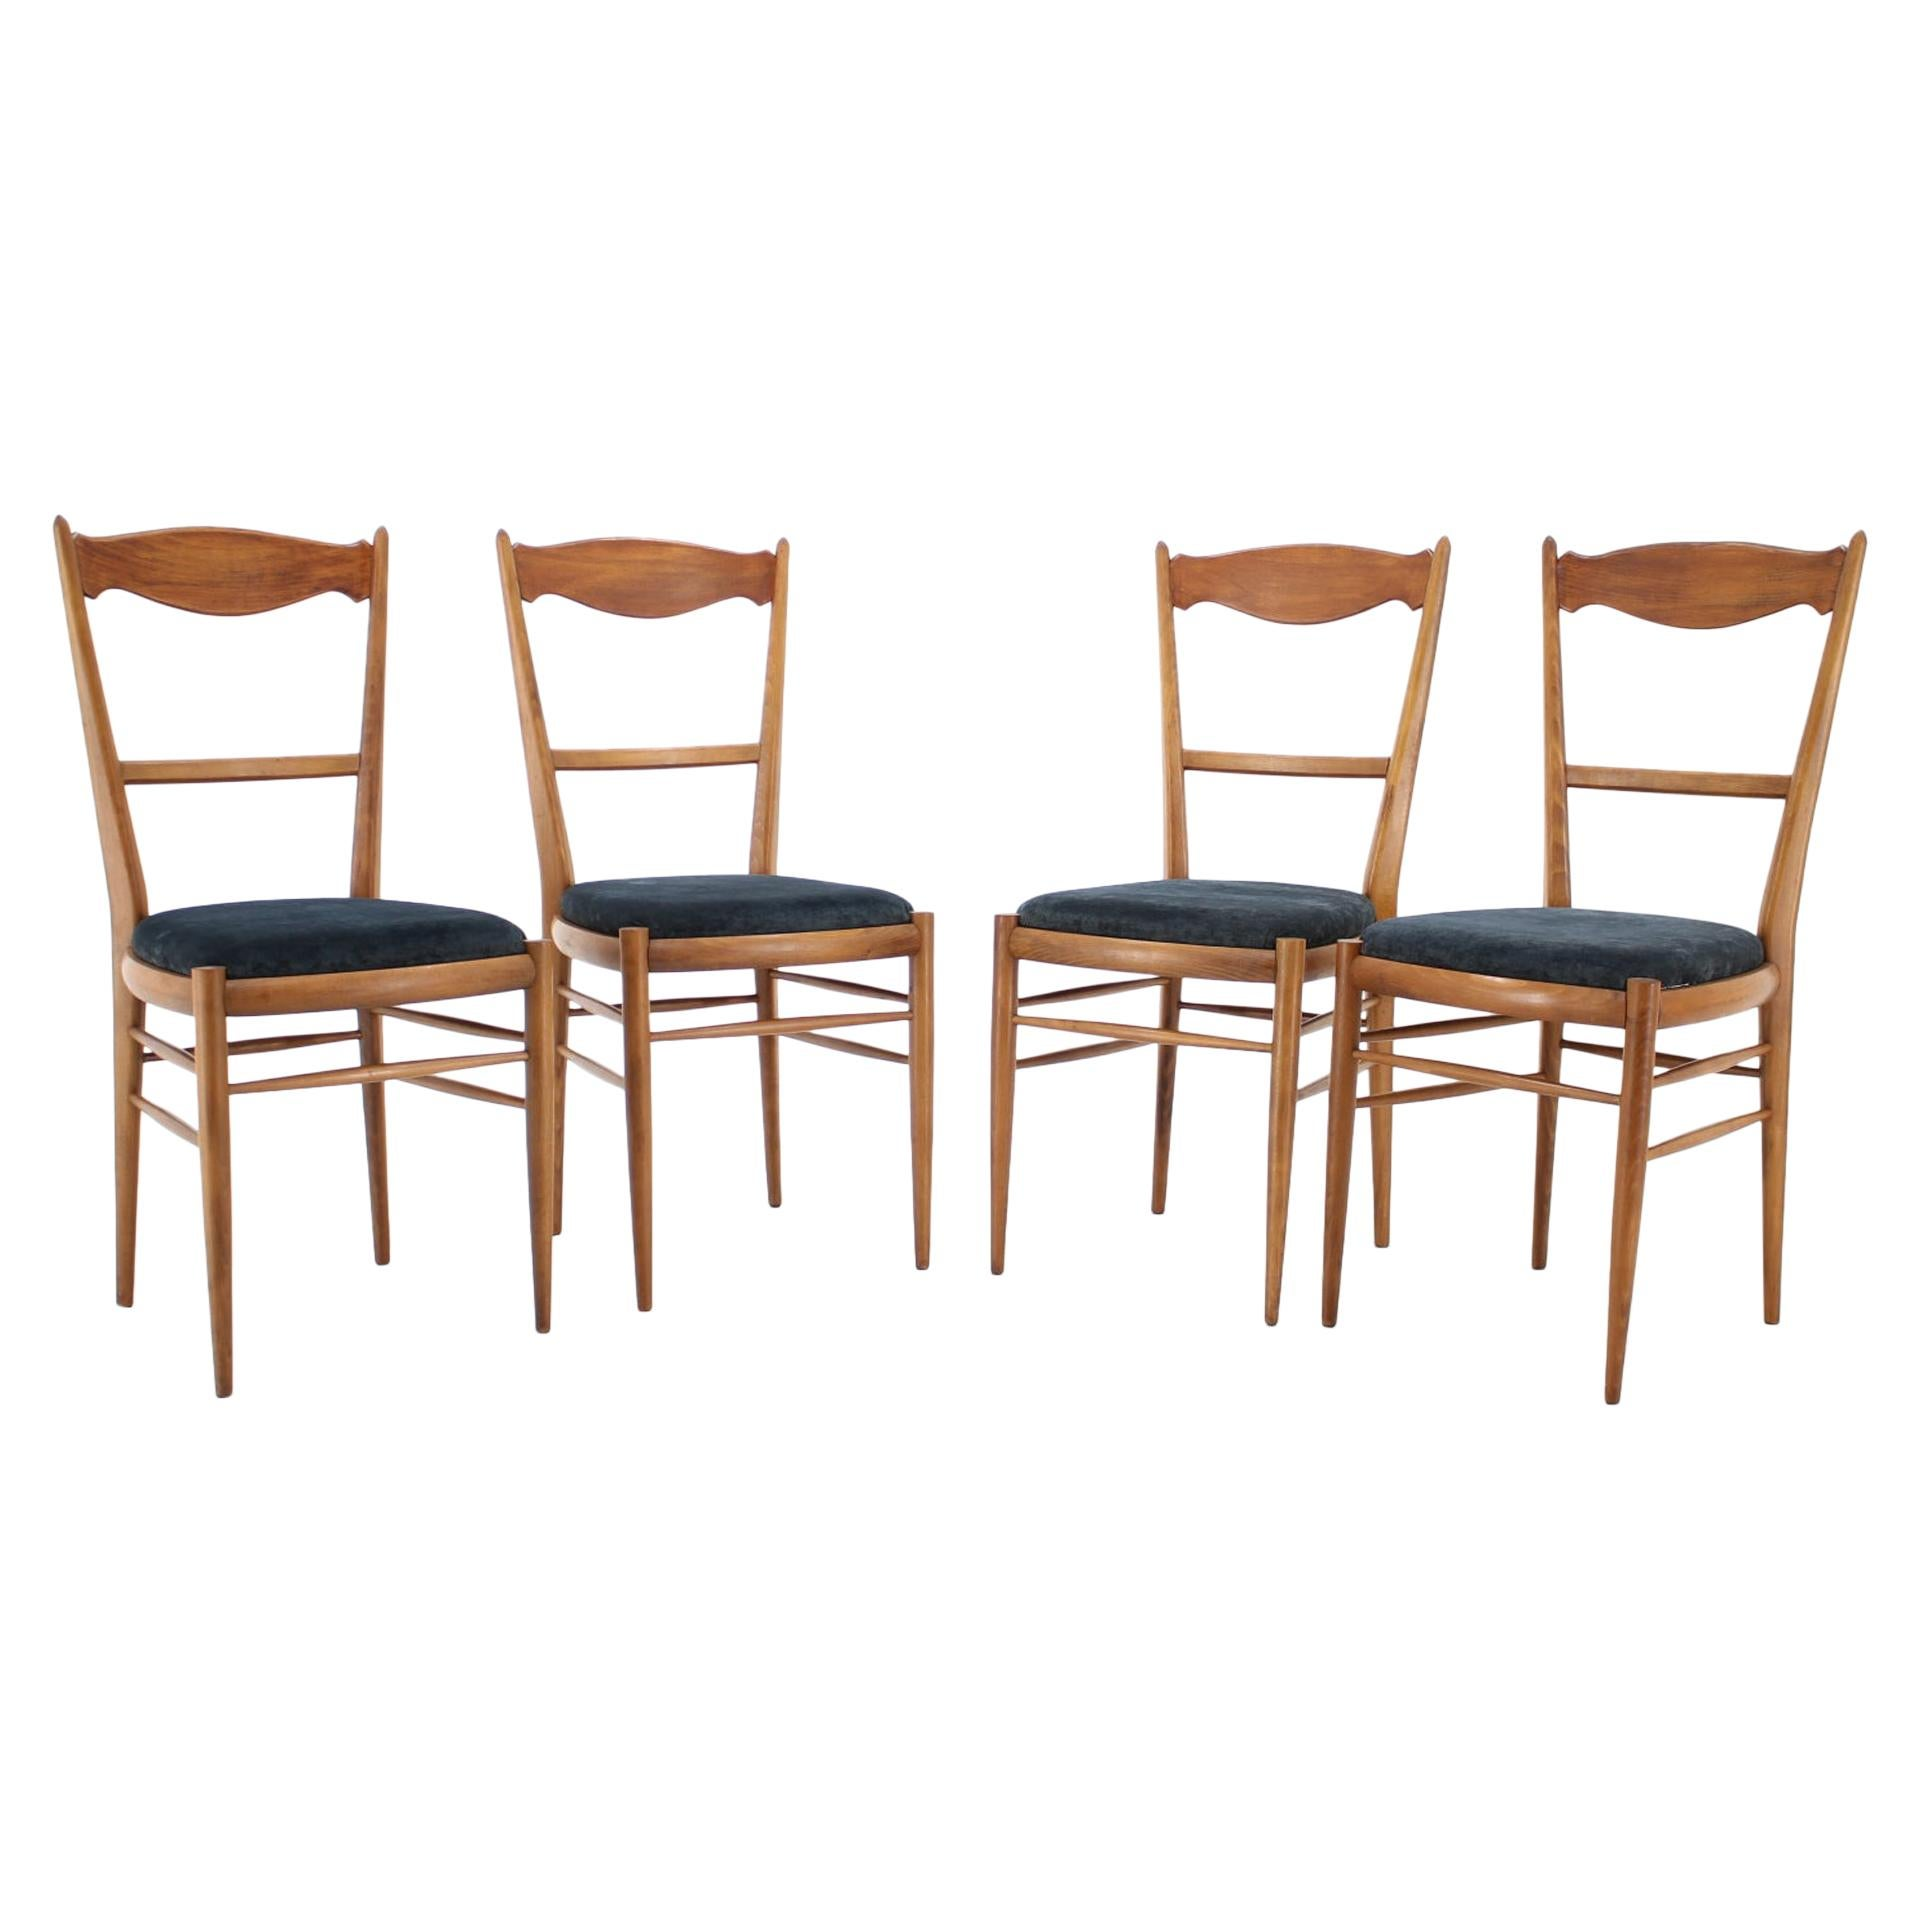 Set of Four Italian Beech Dining Chairs, 1960s